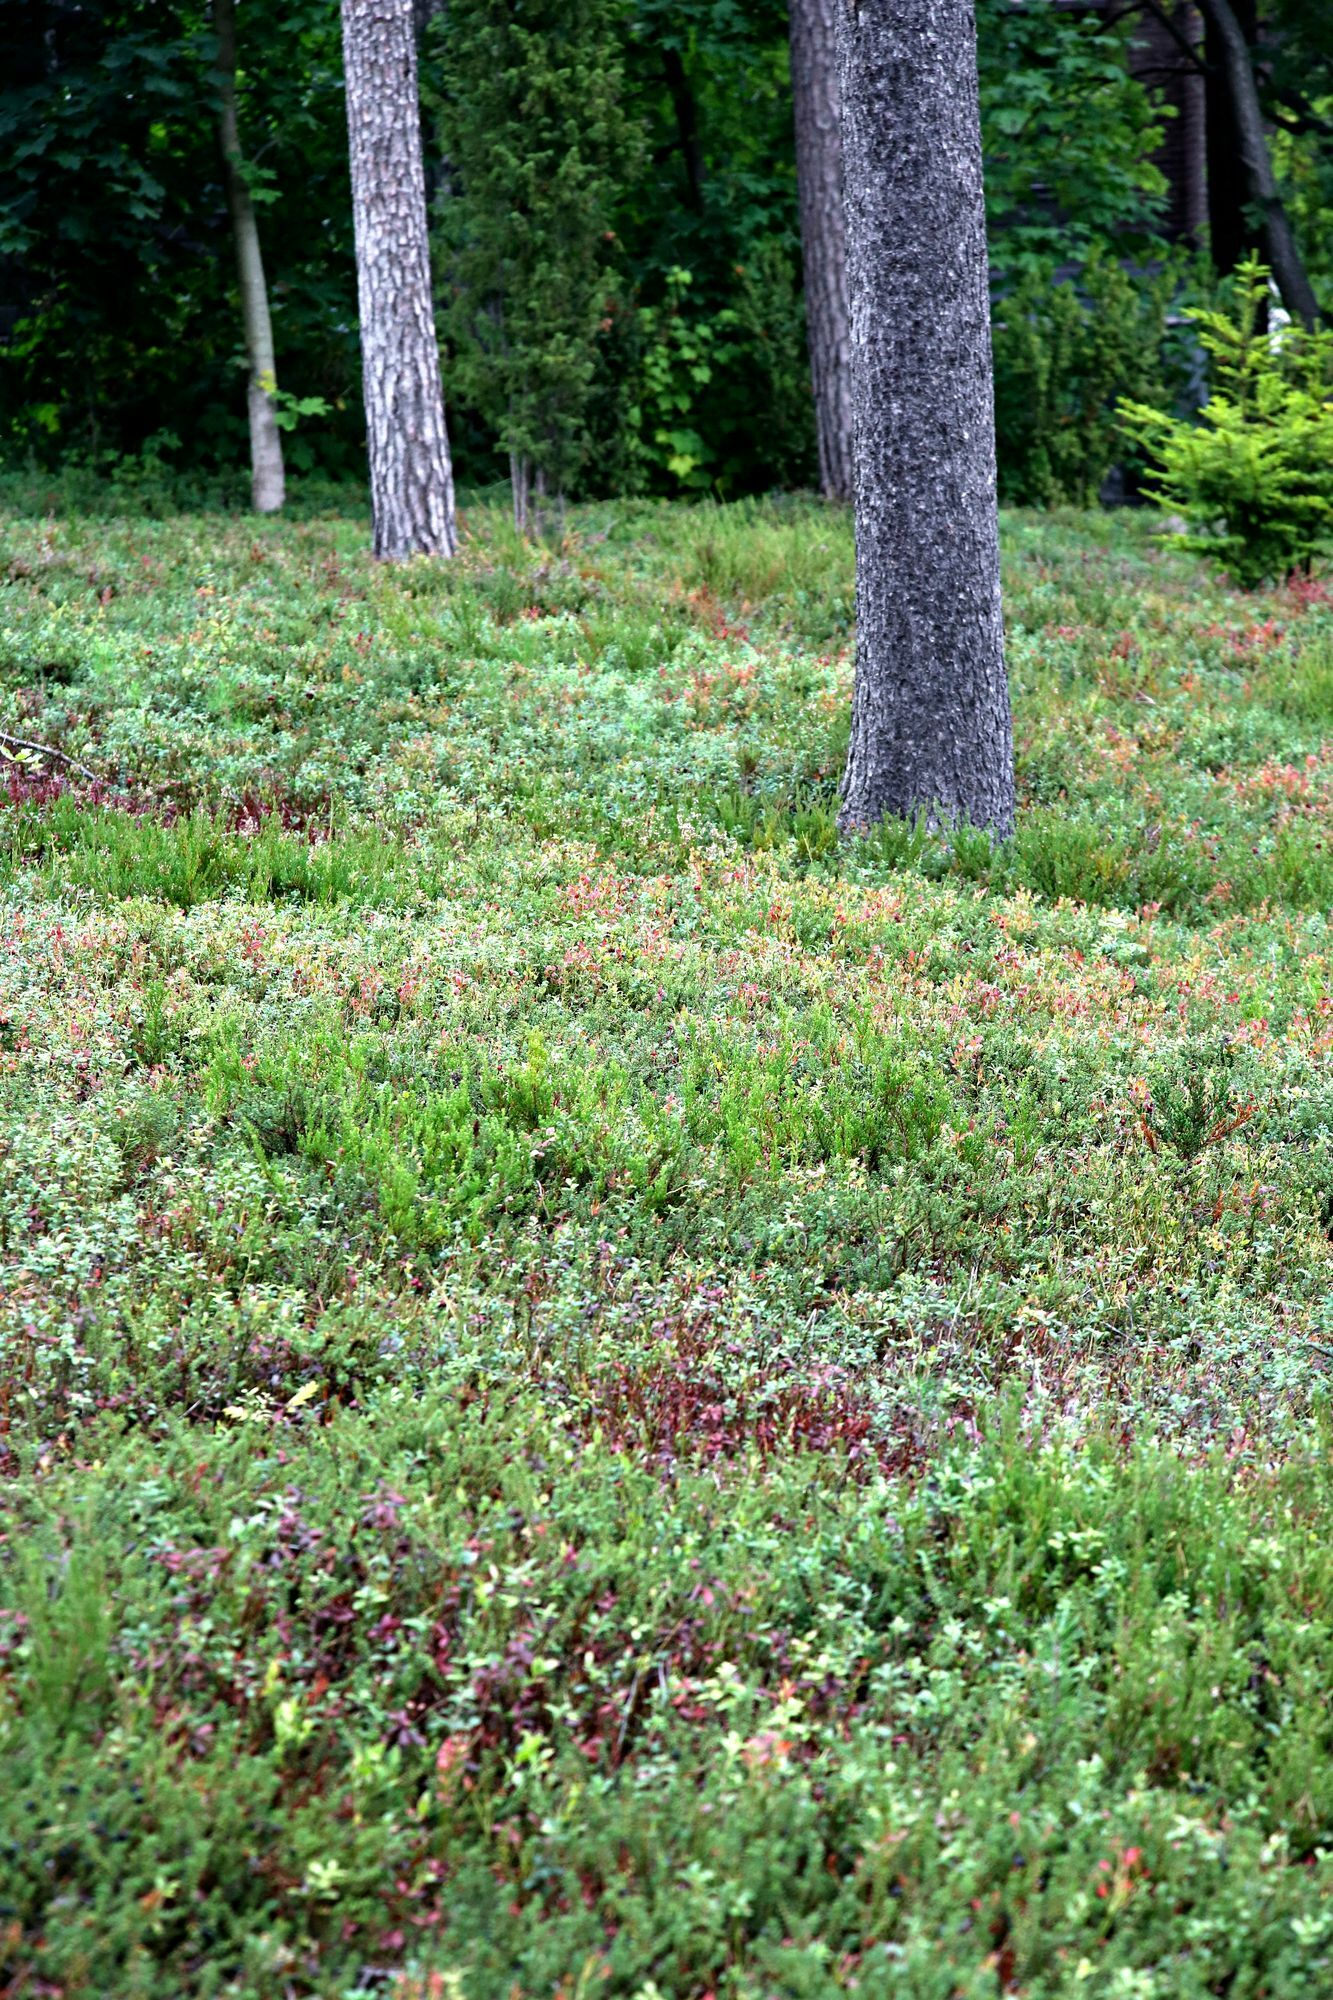 An easy-care cottage yard where you can also pick blueberries for a pie!  The municipality offers this.